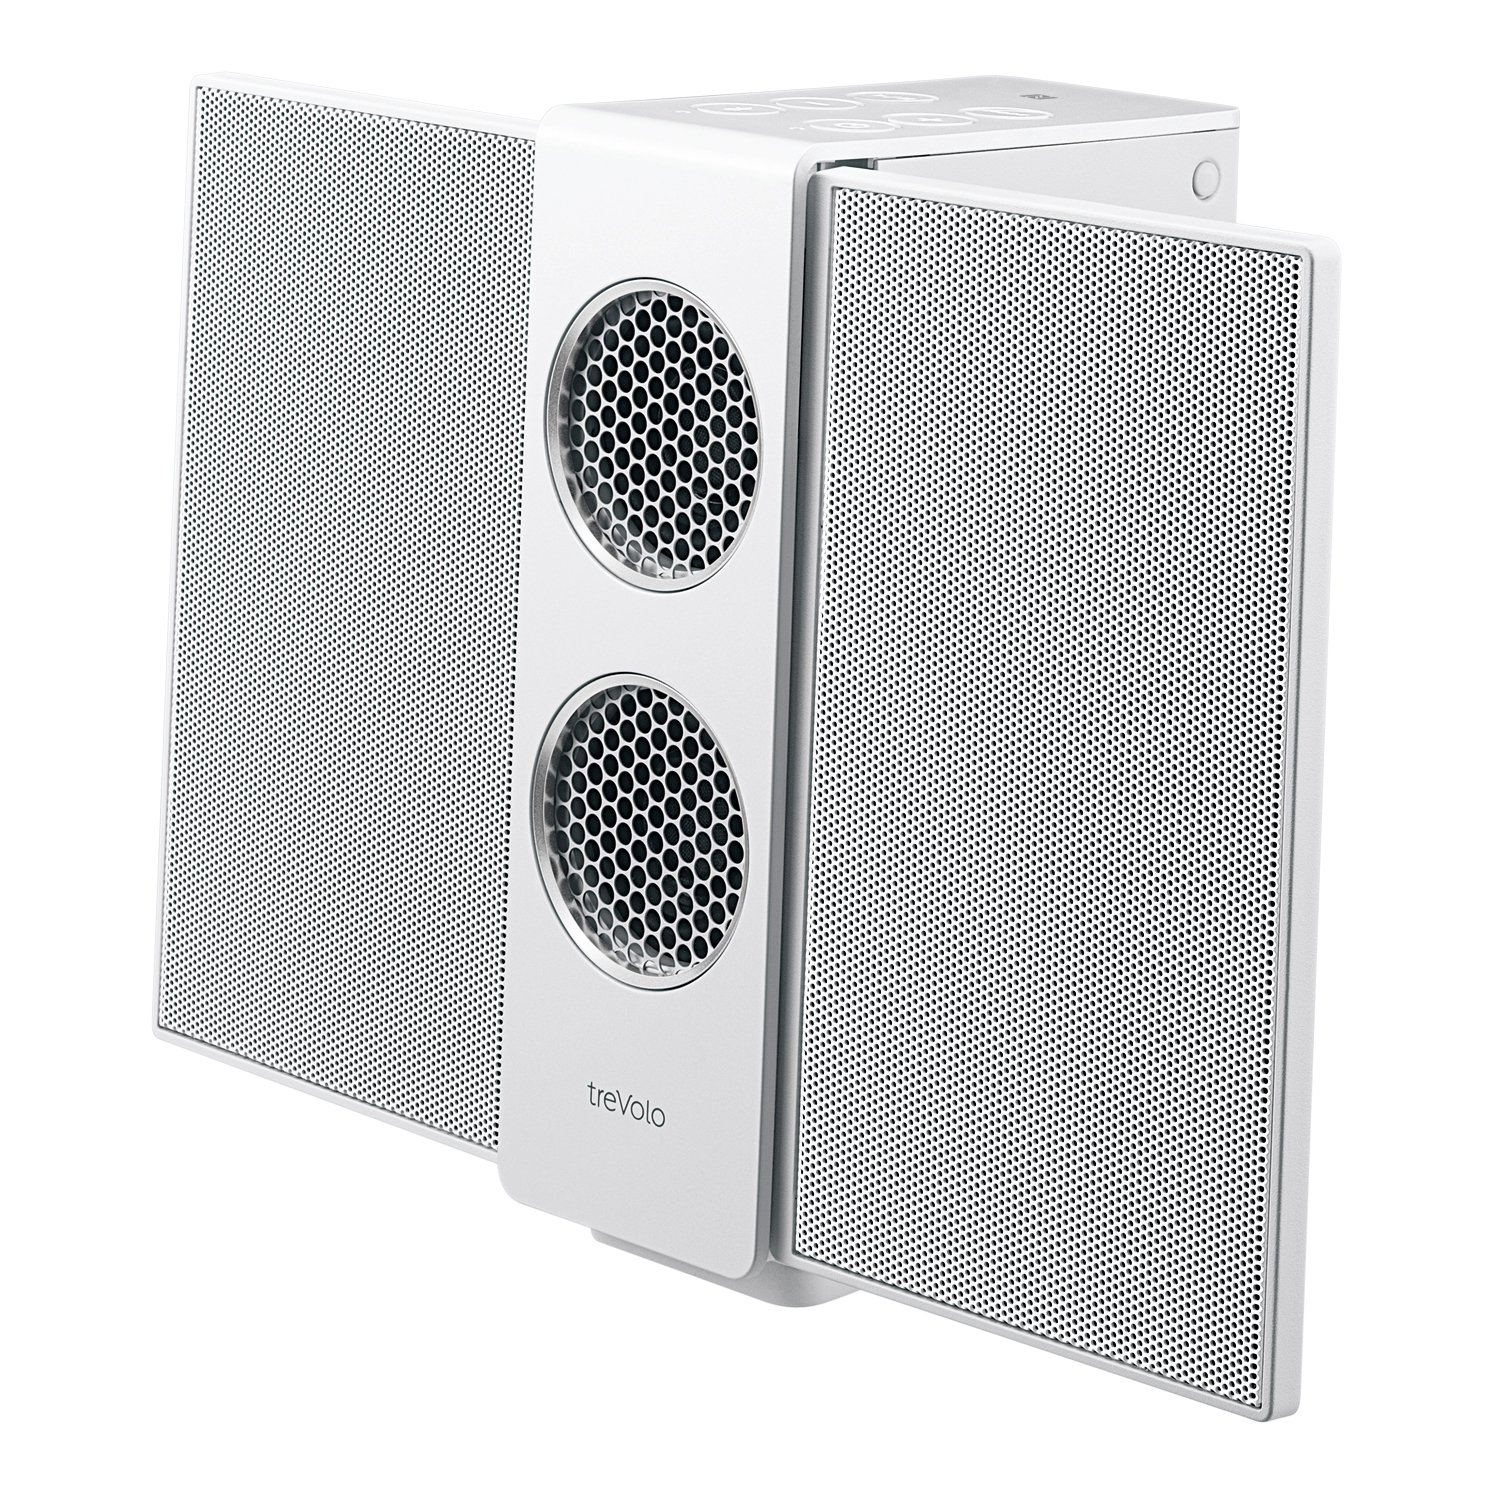 BenQ treVolo S Wireless Bluetooth Portable Electrostatic Speaker, 3D, NFC,  18 hr playing time, with Electrostatic Technology – White